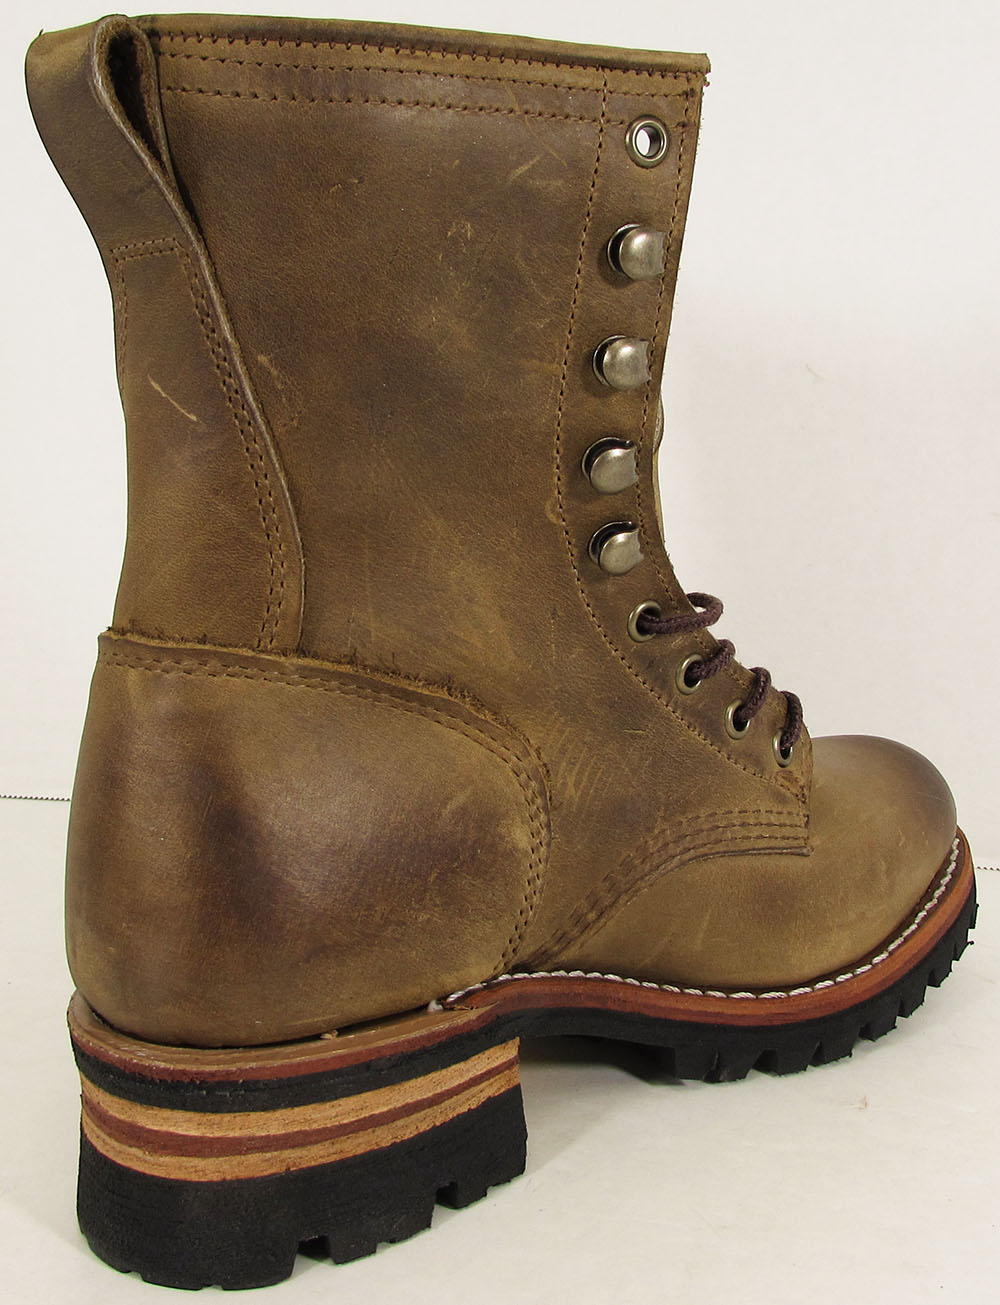 Frye-Womens-Logger-8G-Leather-Work-Boots thumbnail 9